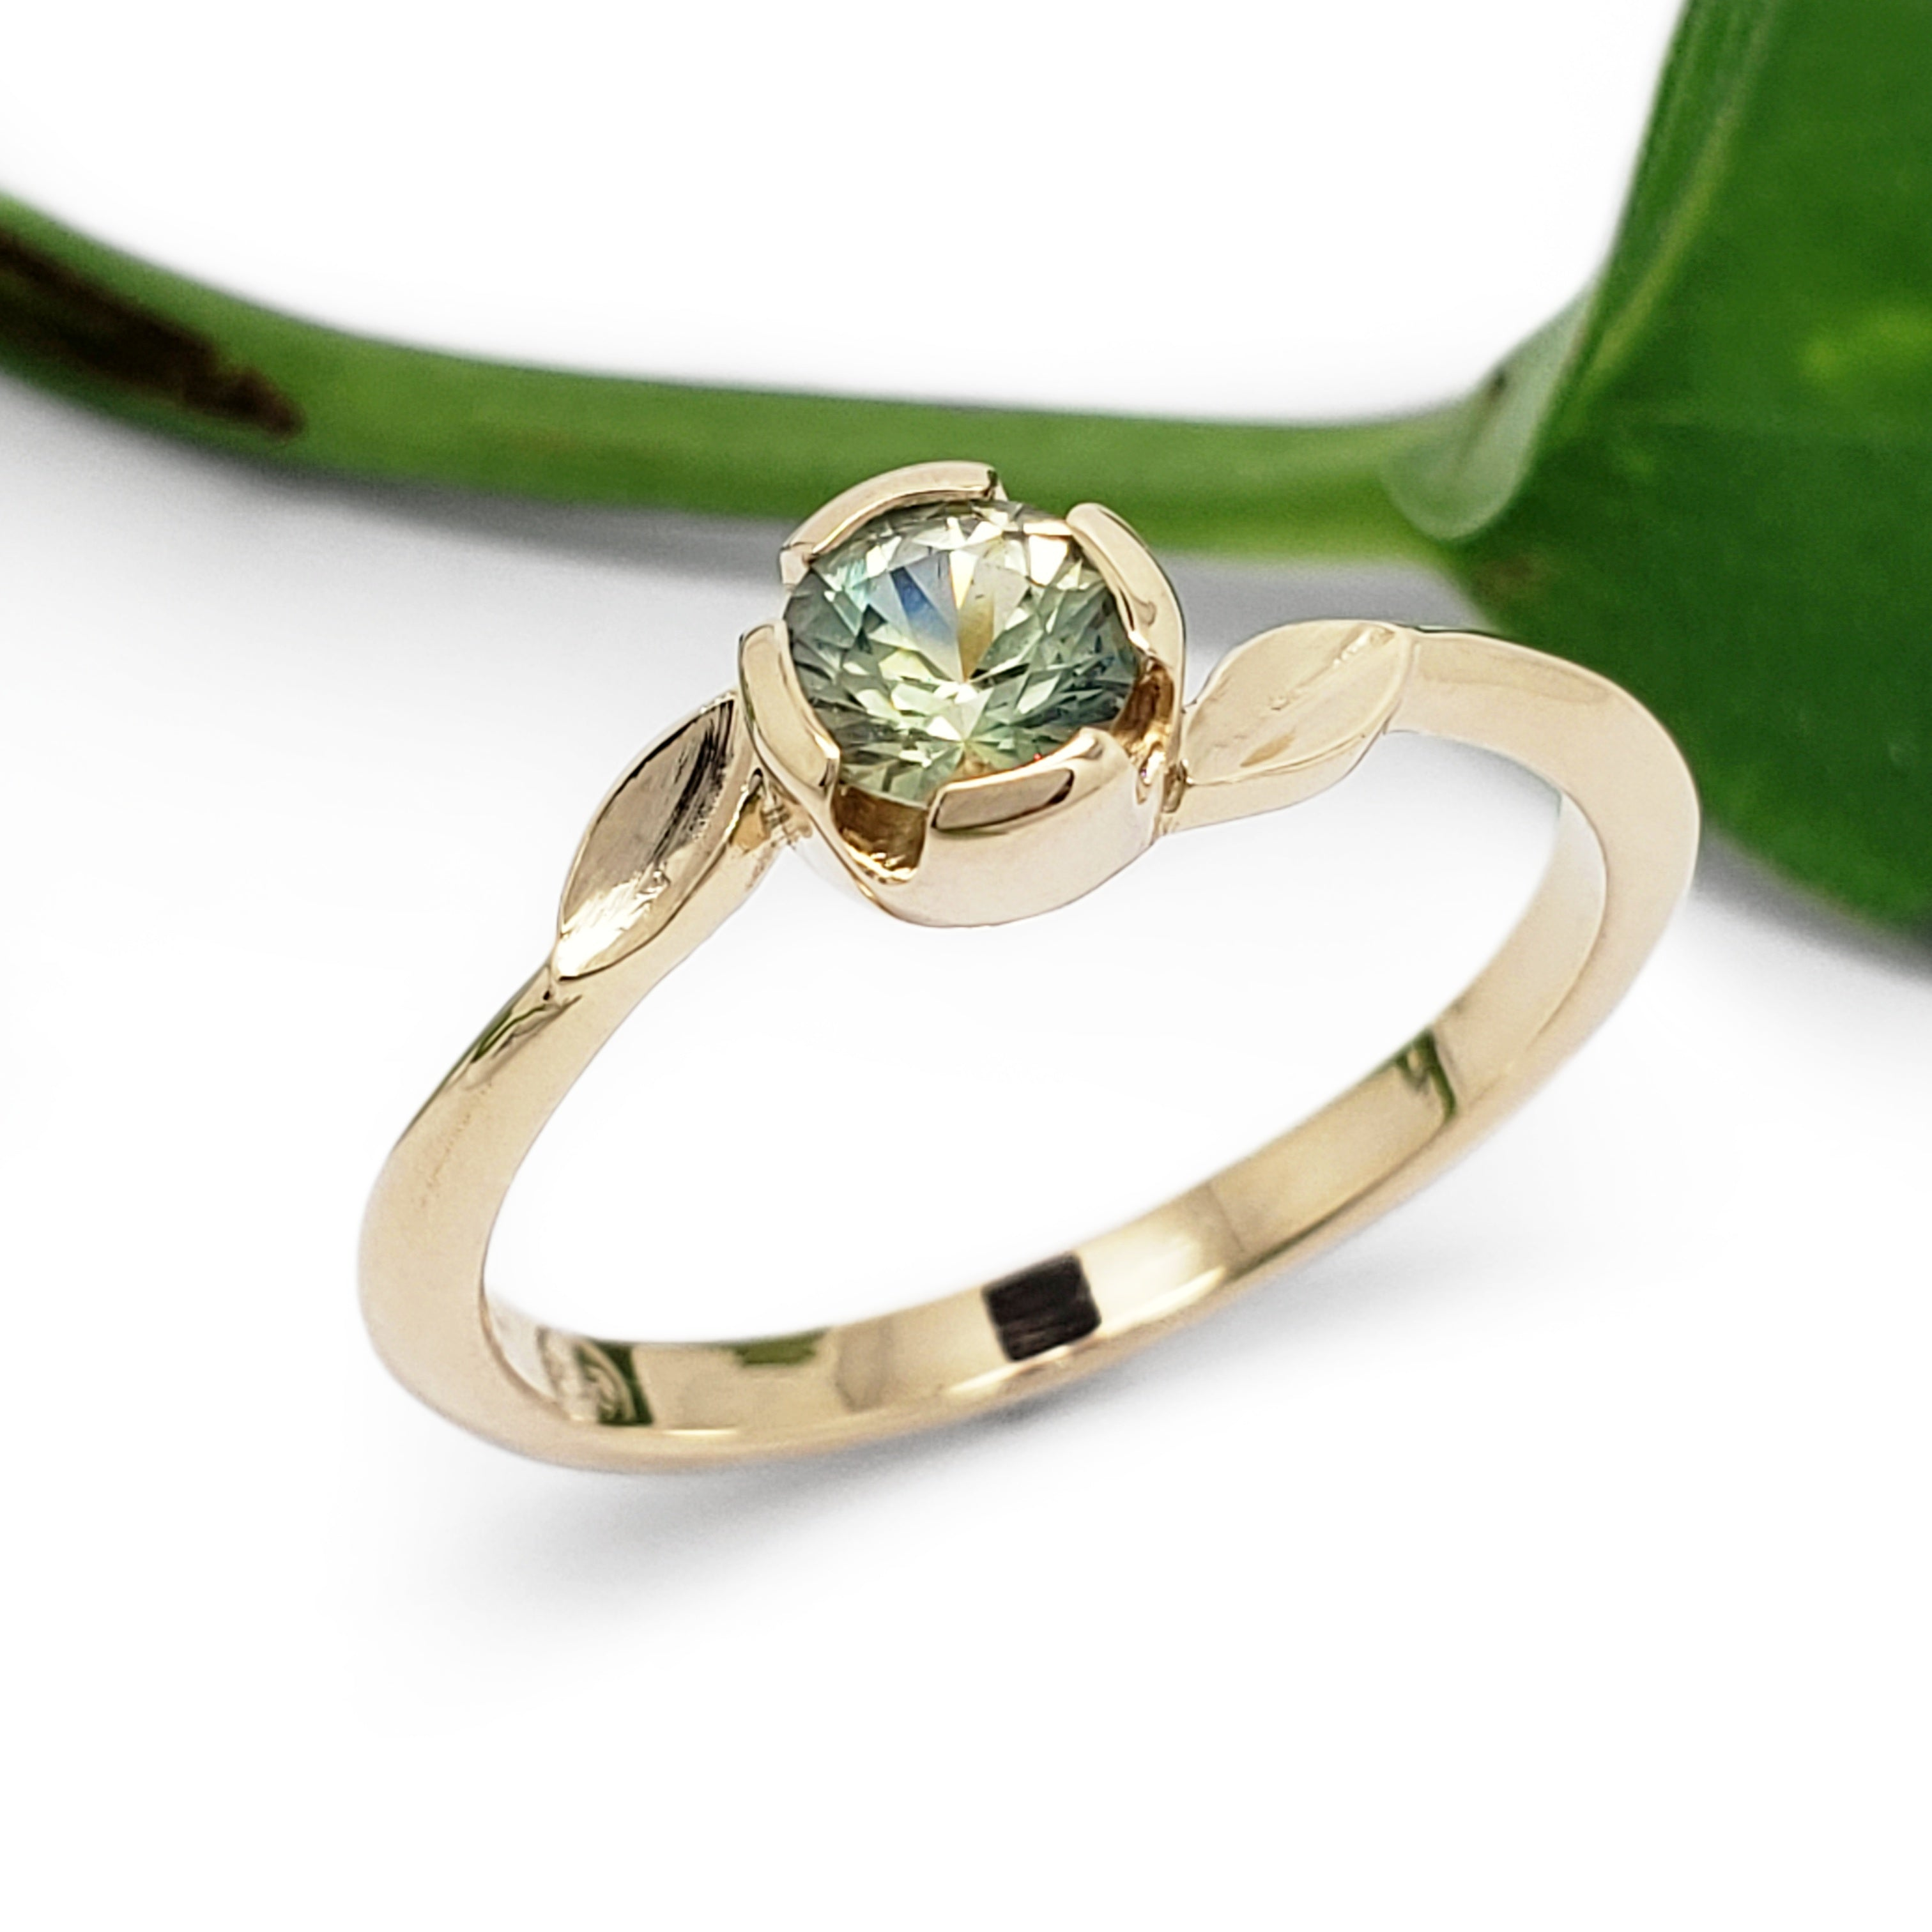 Green Sapphire Engagement Ring | Era Design Vancouver Canada